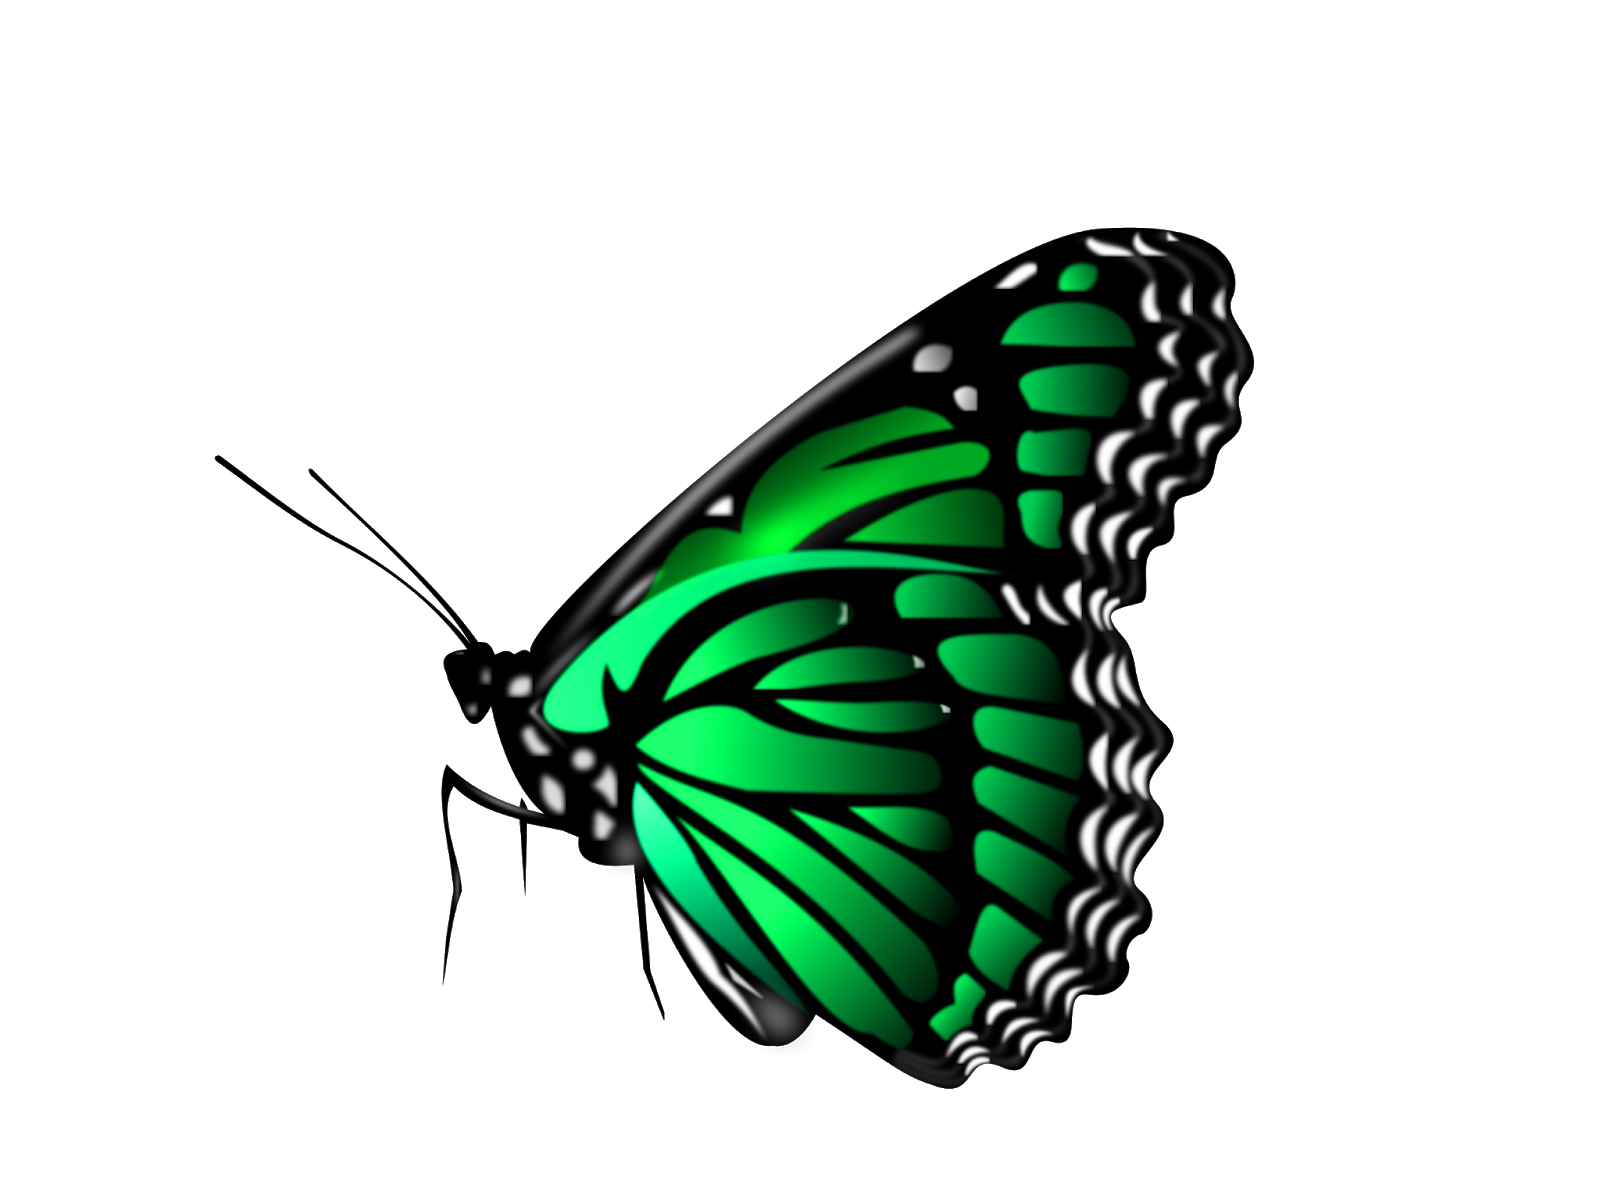 Pin by Meme Loverz on Clipart PNG in 2019.